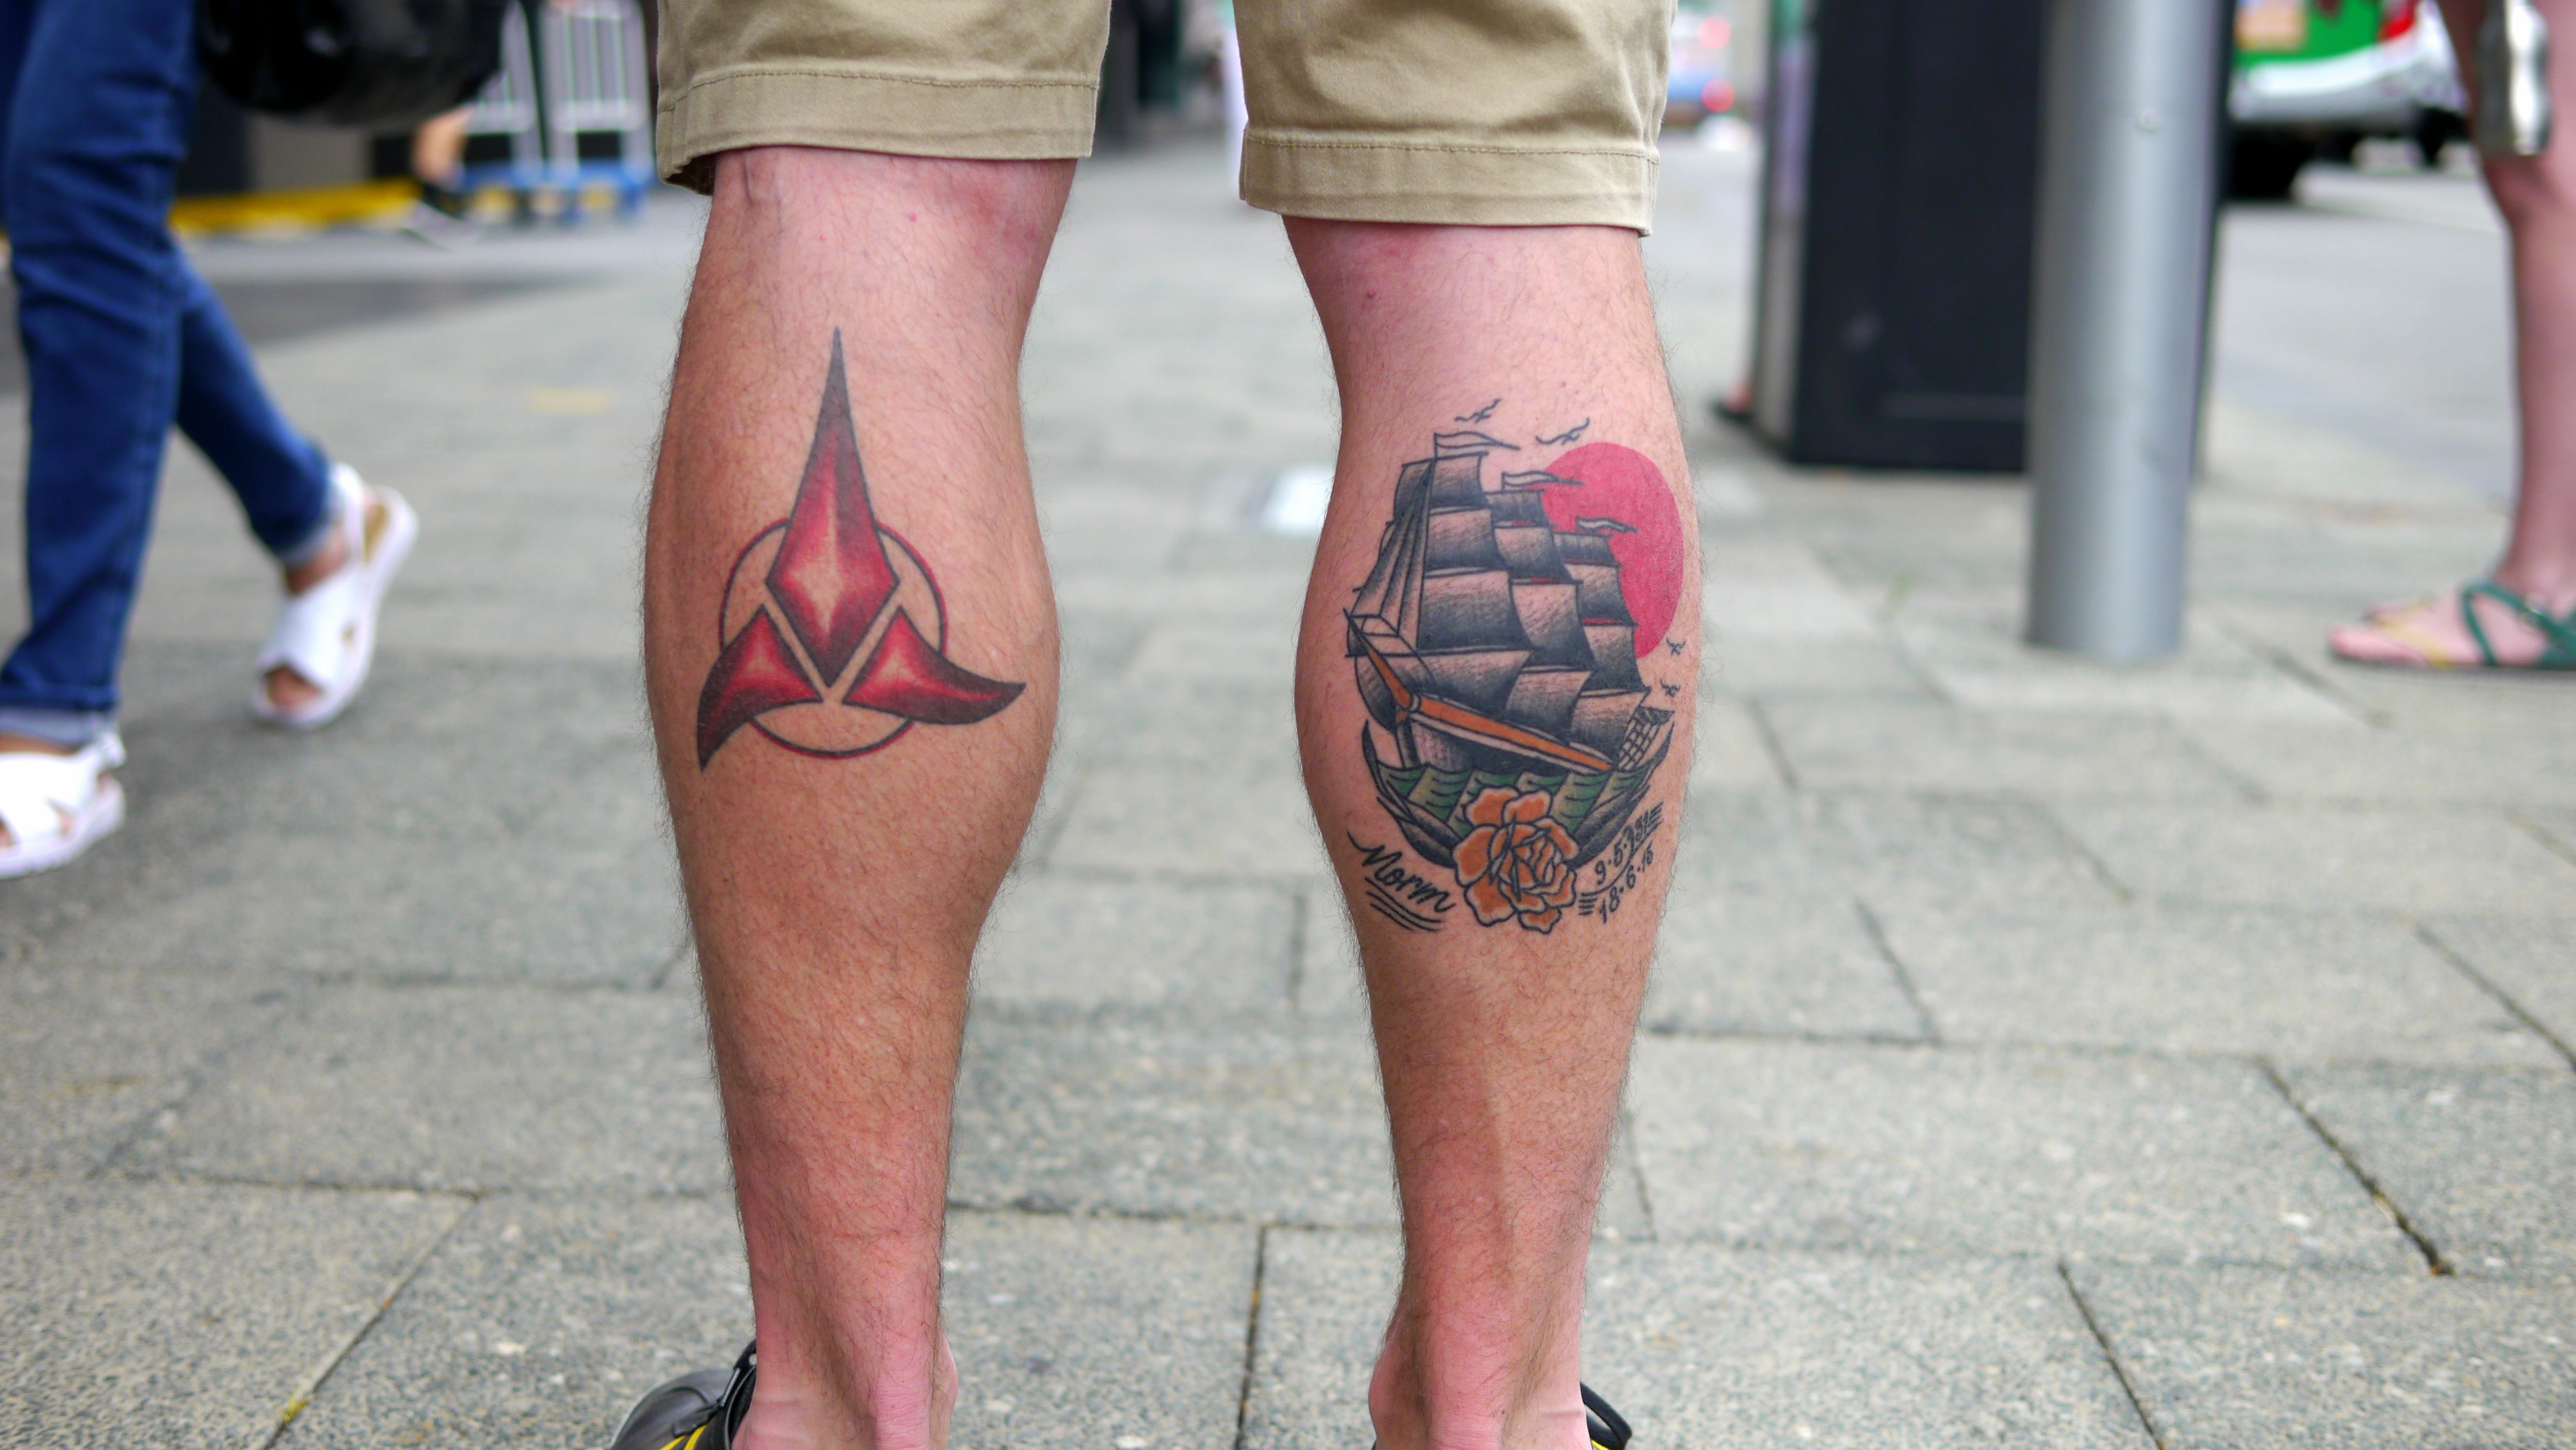 The Left One Is A Symbol For One Of The Races In Star Trek I Have